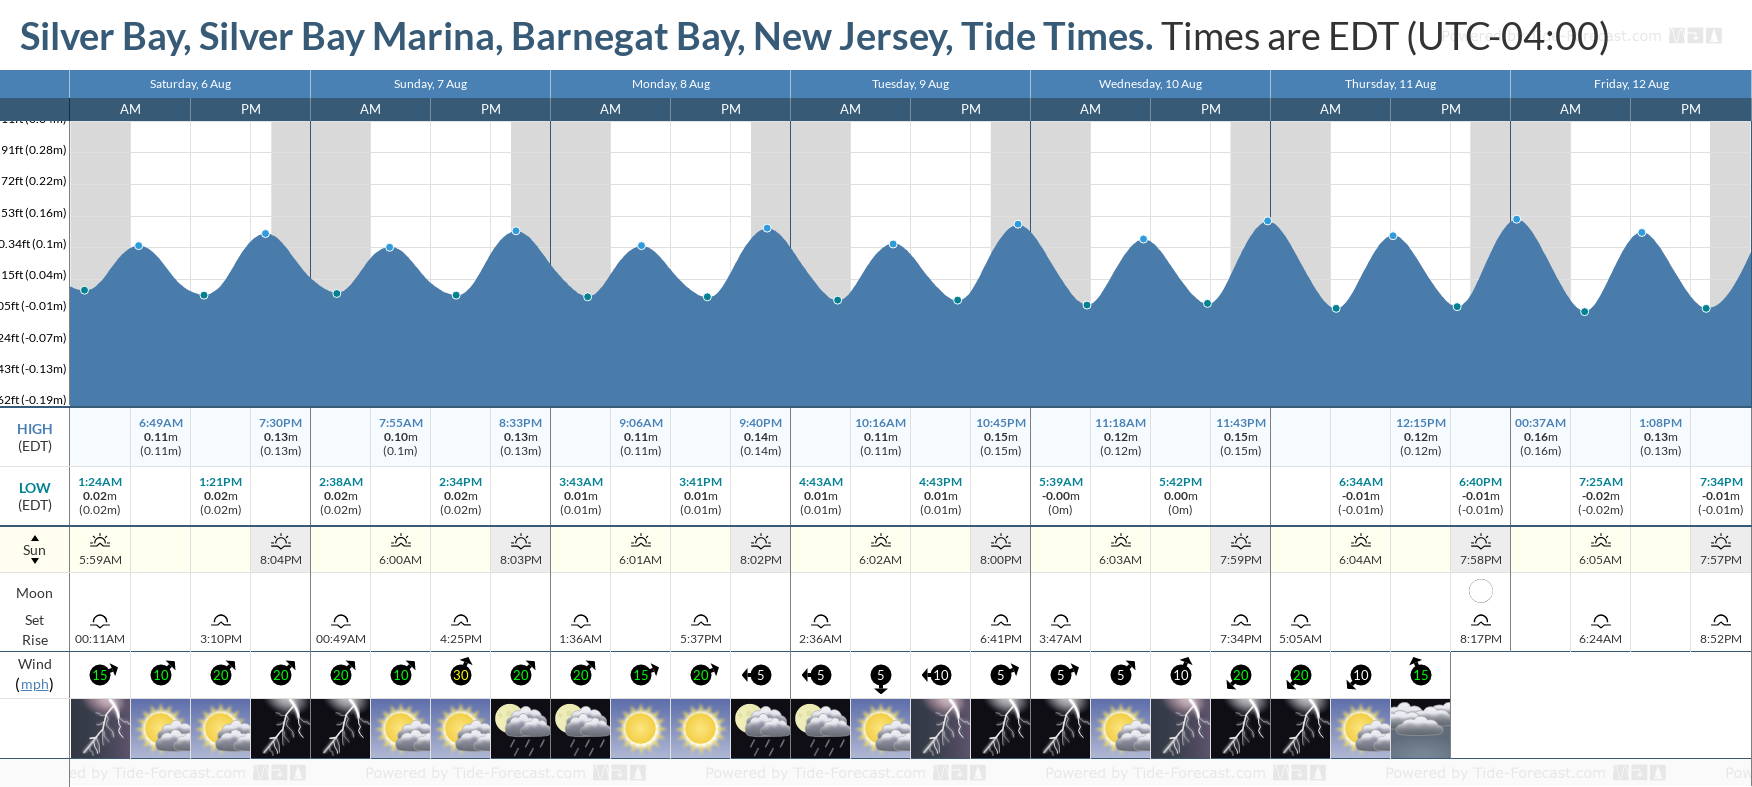 Silver Bay, Silver Bay Marina, Barnegat Bay, New Jersey Tide Chart including high and low tide tide times for the next 7 days